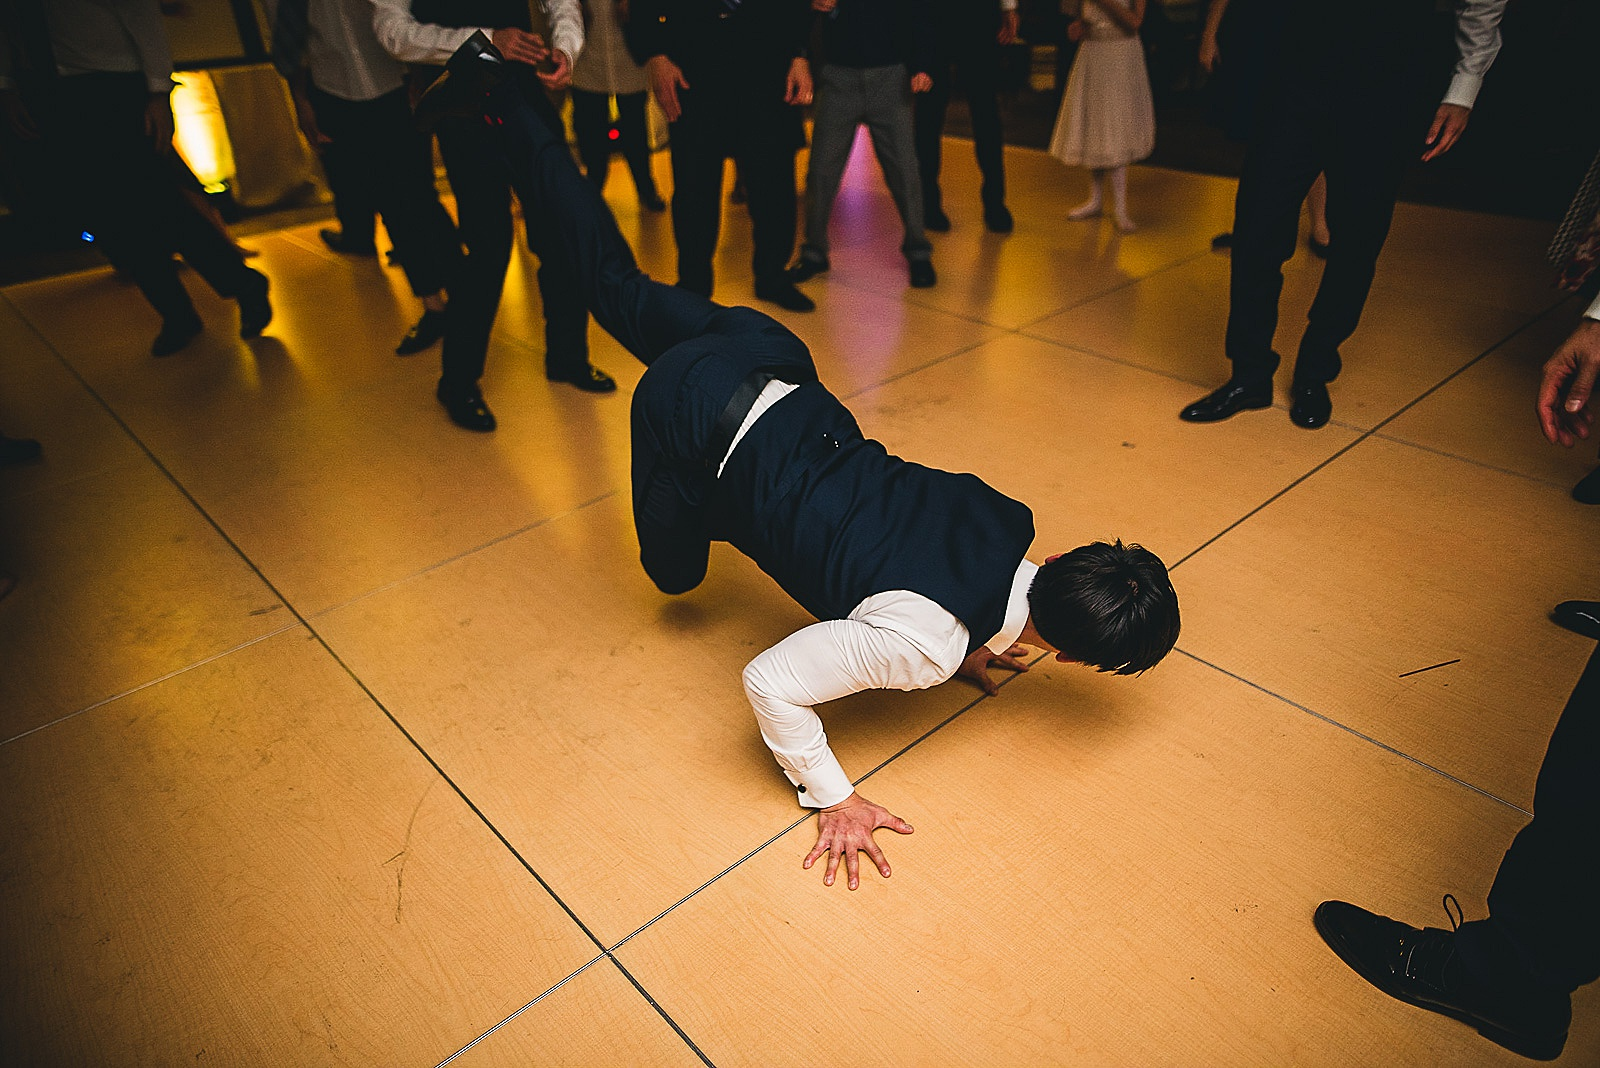 36 breakdancing wedding photos - Chicago Wedding Photography at Morton Arboretum // Alex + Tim